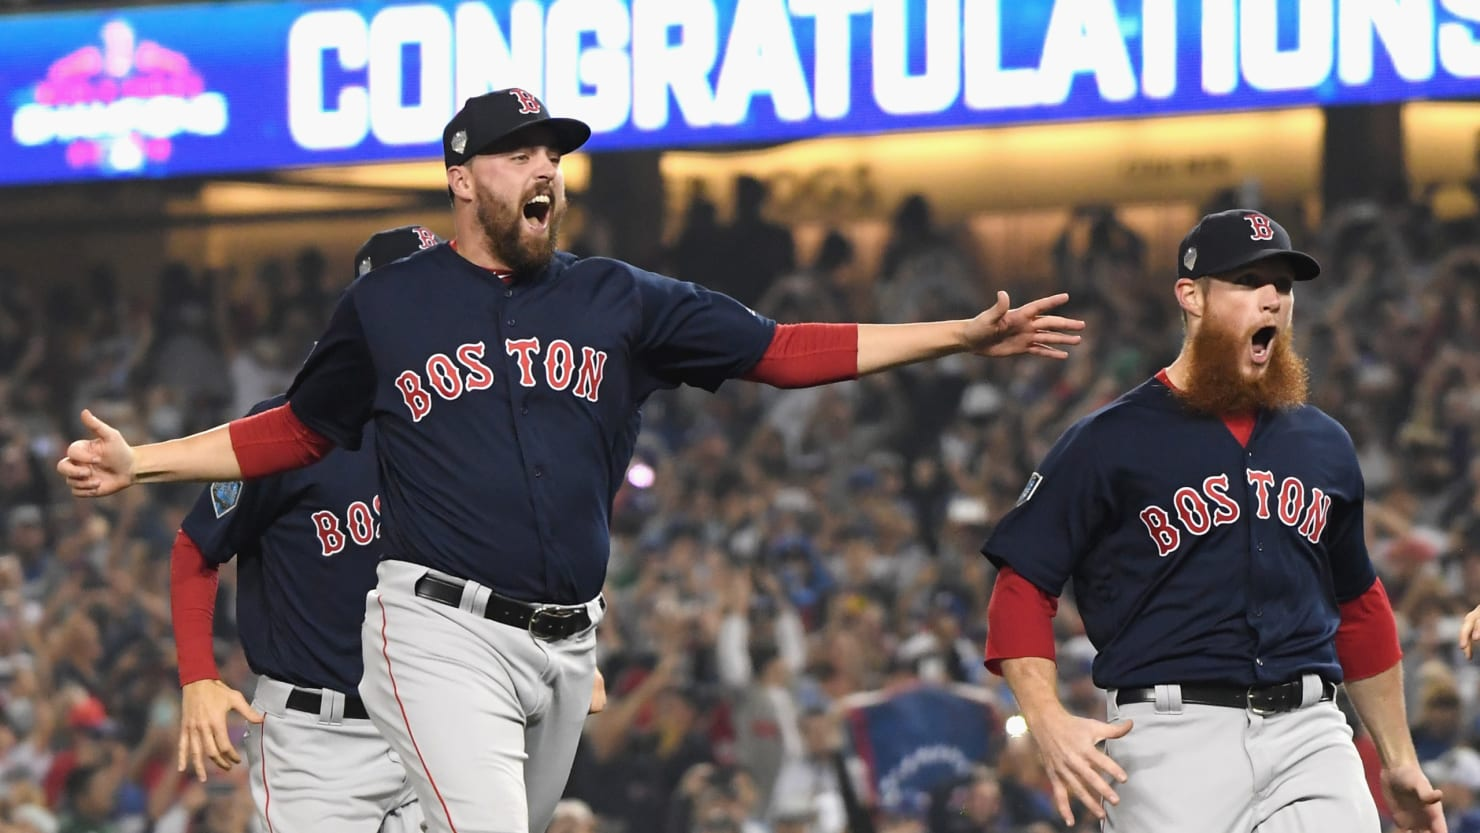 Red Sox Twitter Account Trolls Haters After World Series Win